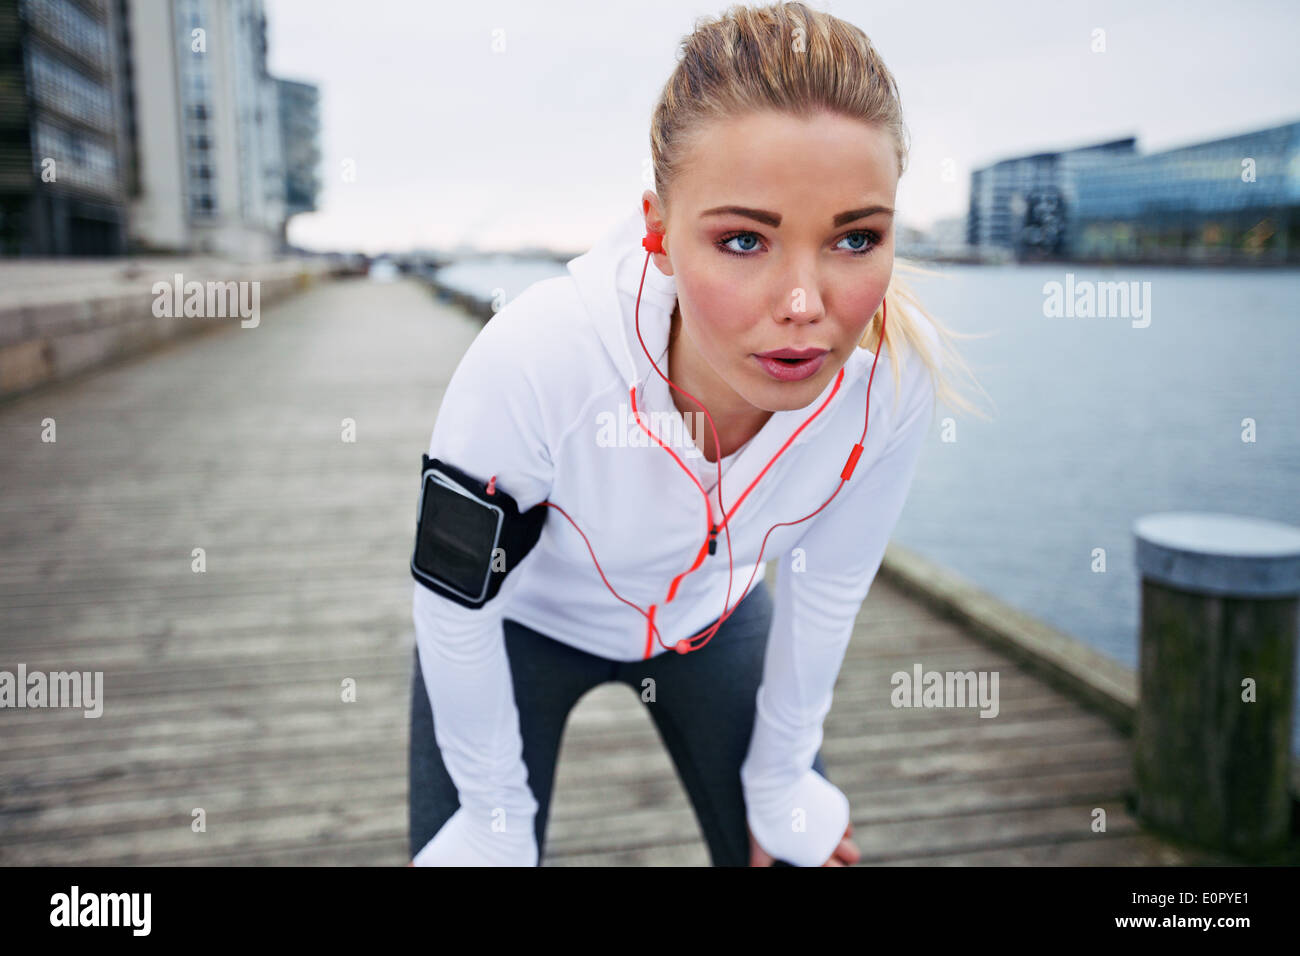 Young woman taking a break from exercise outdoors. Fit young female athlete stopping for rest while jogging along the river. - Stock Image